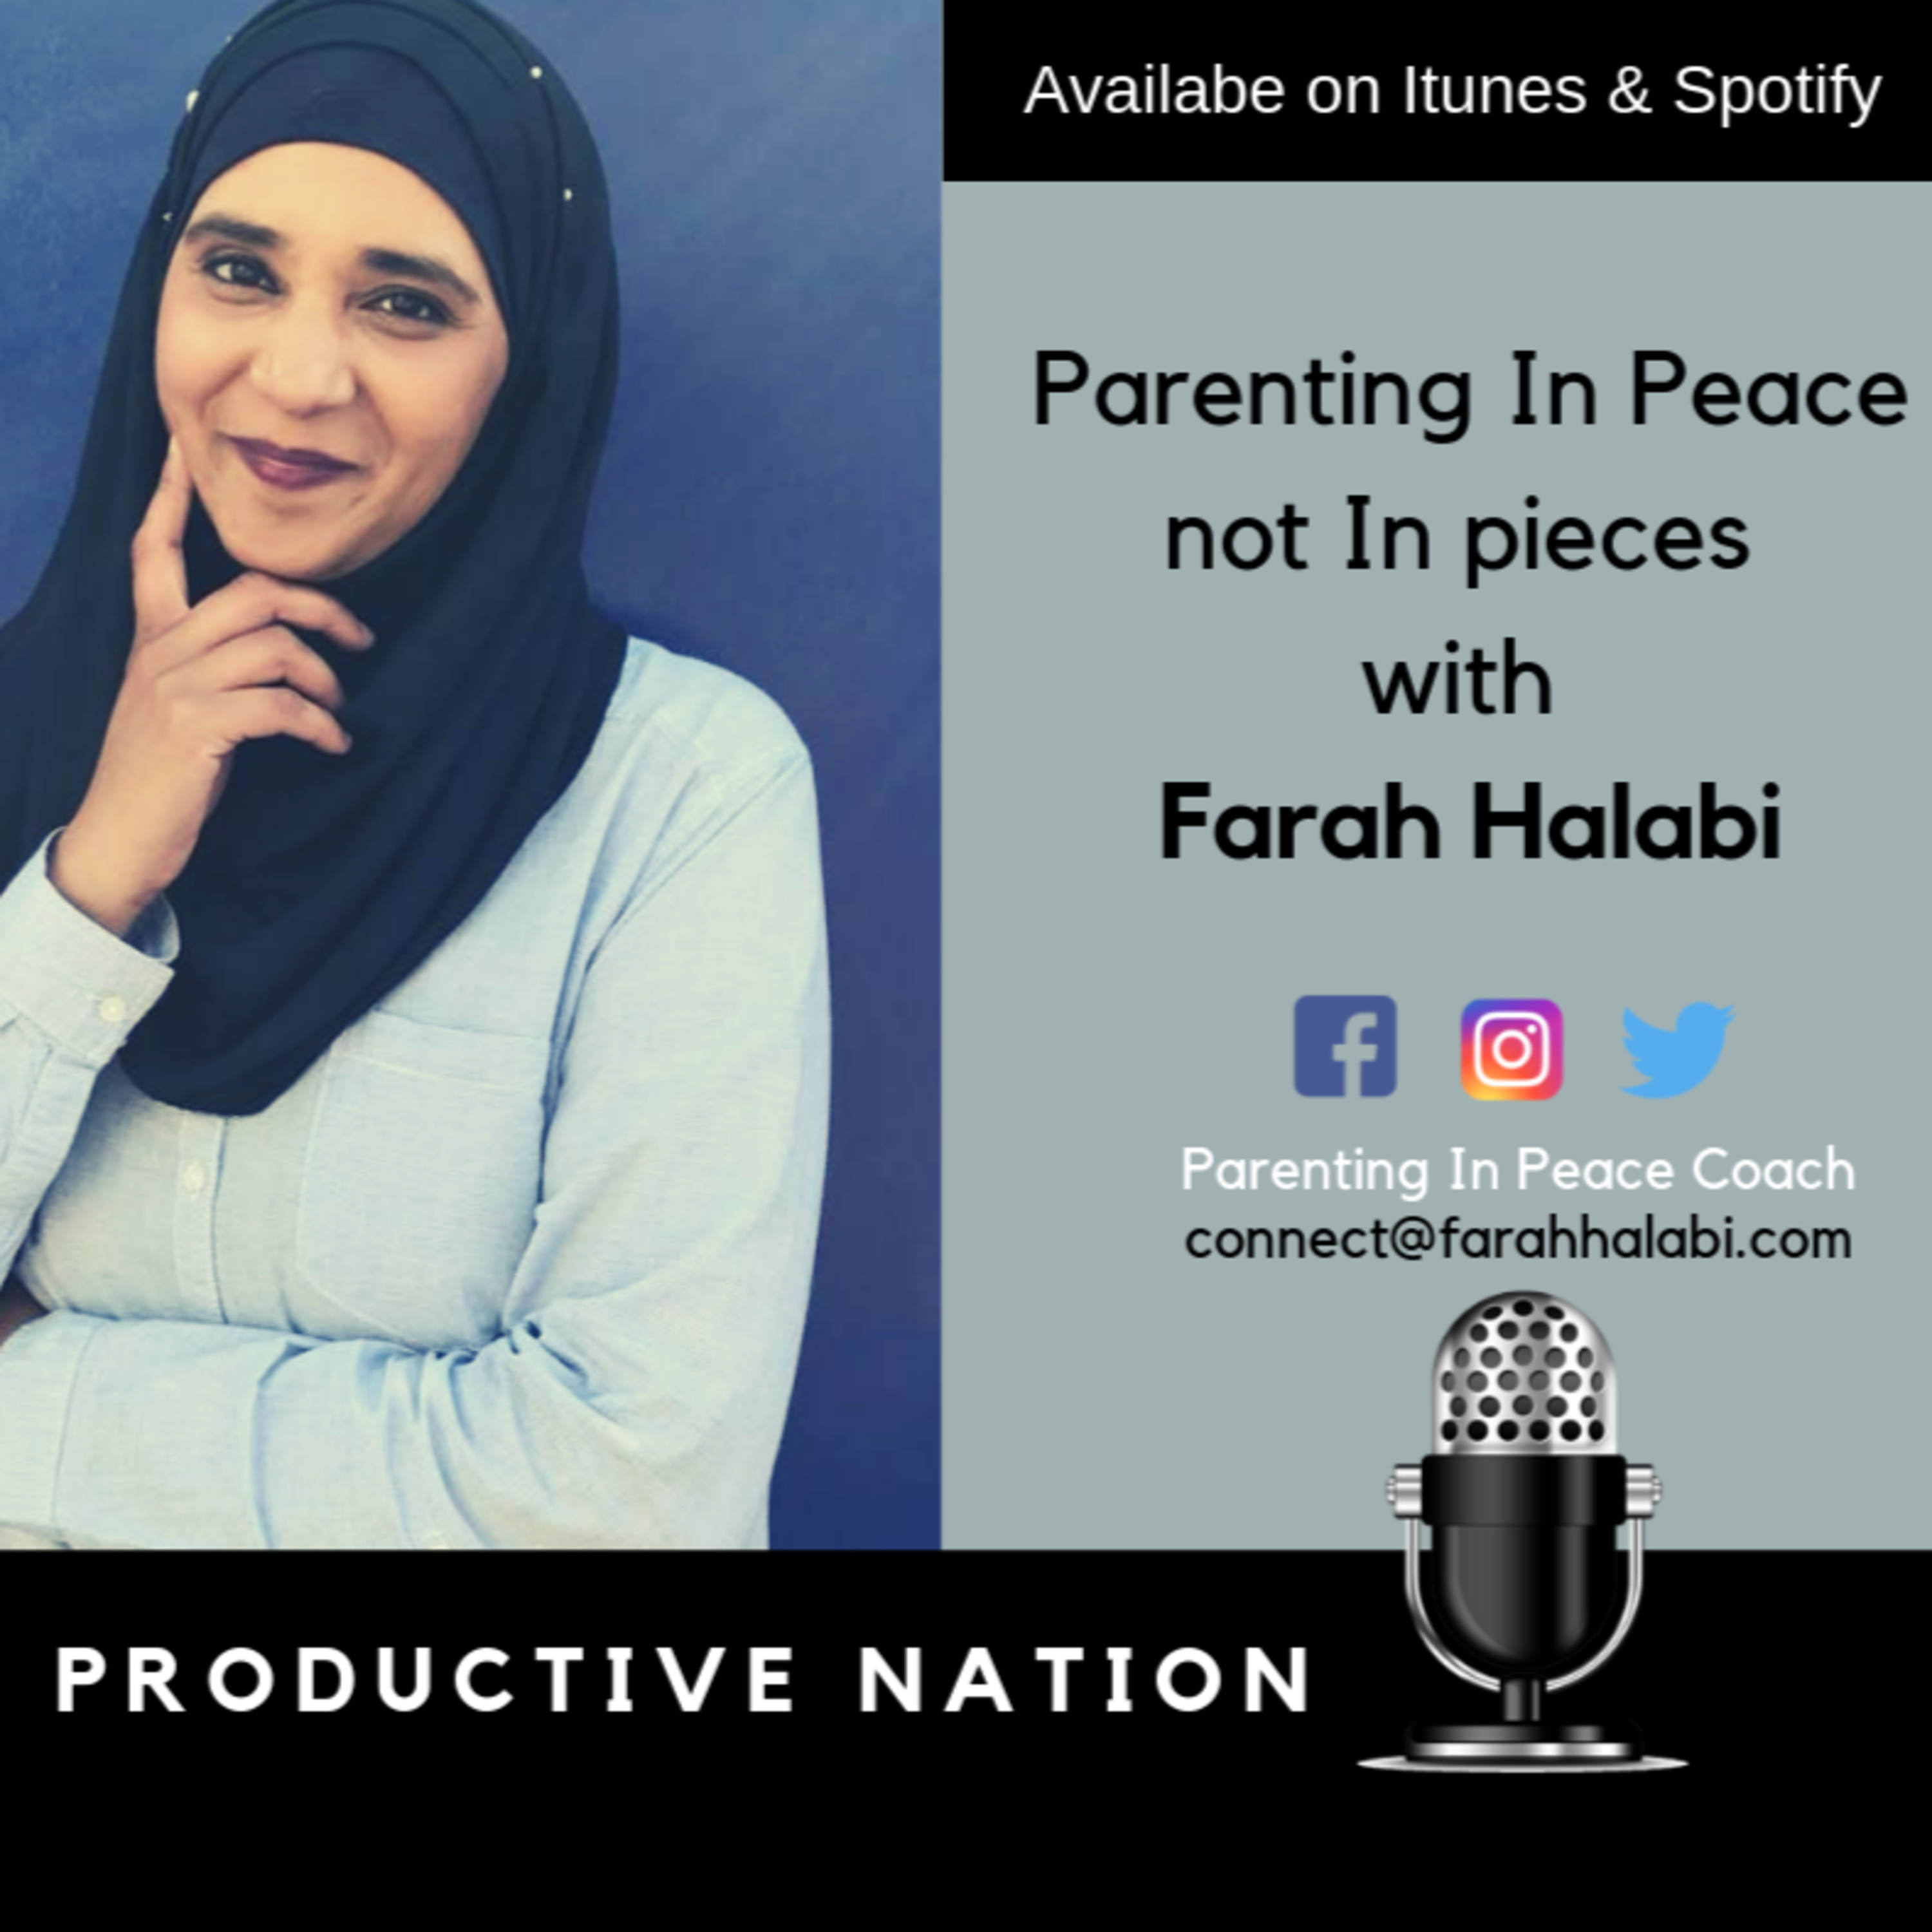 Parenting In Peace not In pieces with Farah Halabi